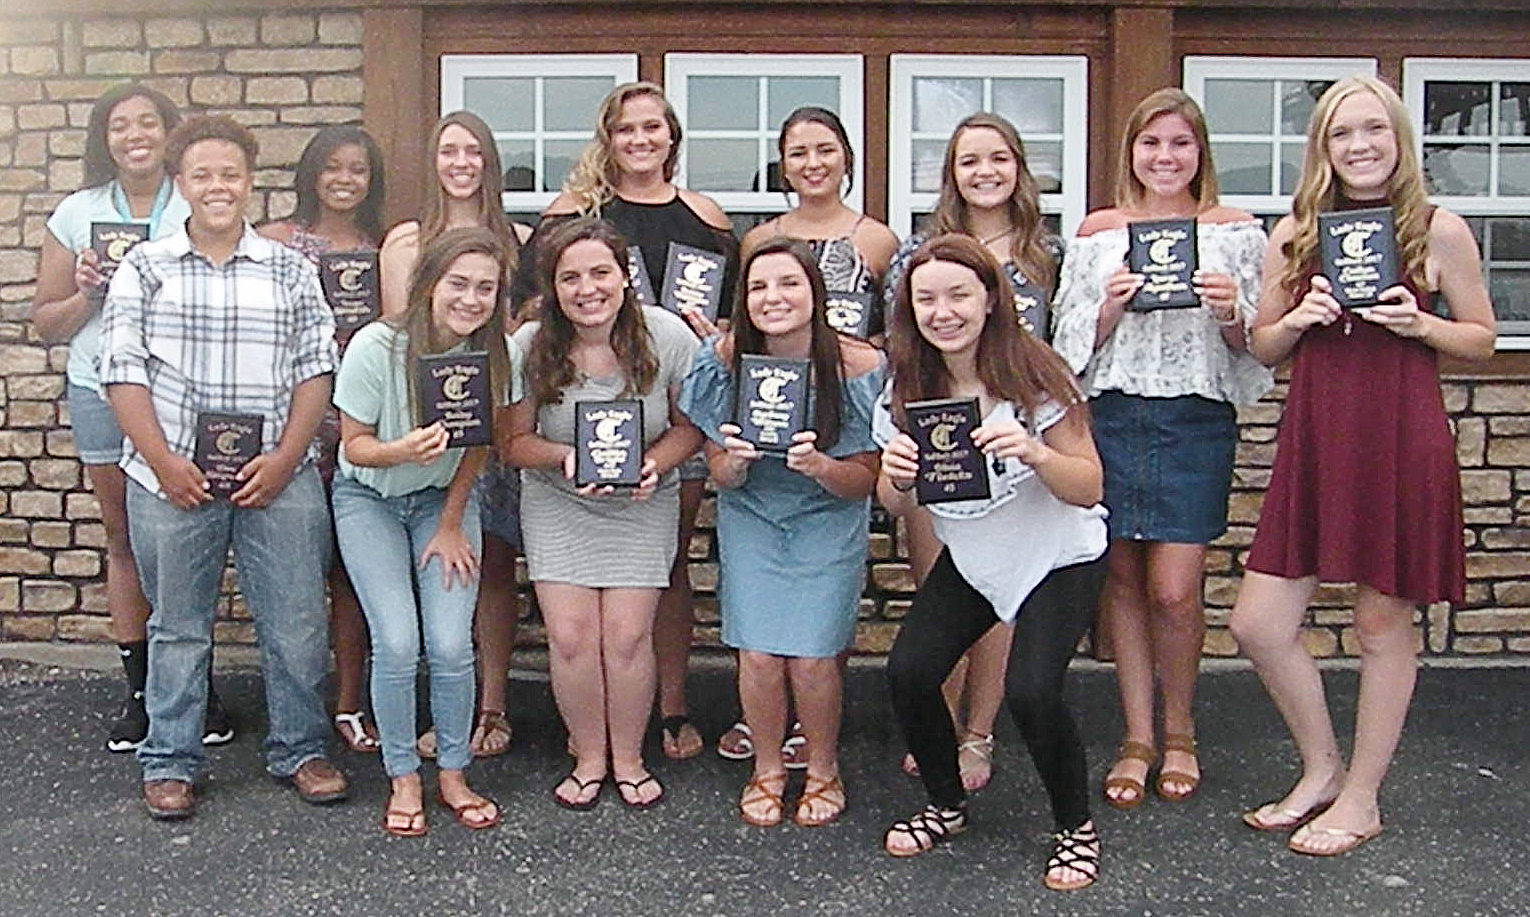 CHS softball players were recently honored at a banquet for their hard work and dedication during this past season. They are, from left, front, junior Dee Simpson, sophomore Bailey Thompson, senior Caitlin Bright, sophomore Sydney Wilson and eighth-grader Olivia Fields. Back, seniors Malaya Hoskins and Vonnea Smith, freshman Abi Wiedewitsch, Brenna Wethington and Kailey Morris, who graduated in May, freshman Kenzi Forbis, sophomore Lauryn Agathen and freshman Catlyn Clausen. Absent from the photo are sophomore Shallan Philpott and seniors Kayla Young, Kiyah Barnett and Nena Barnett.